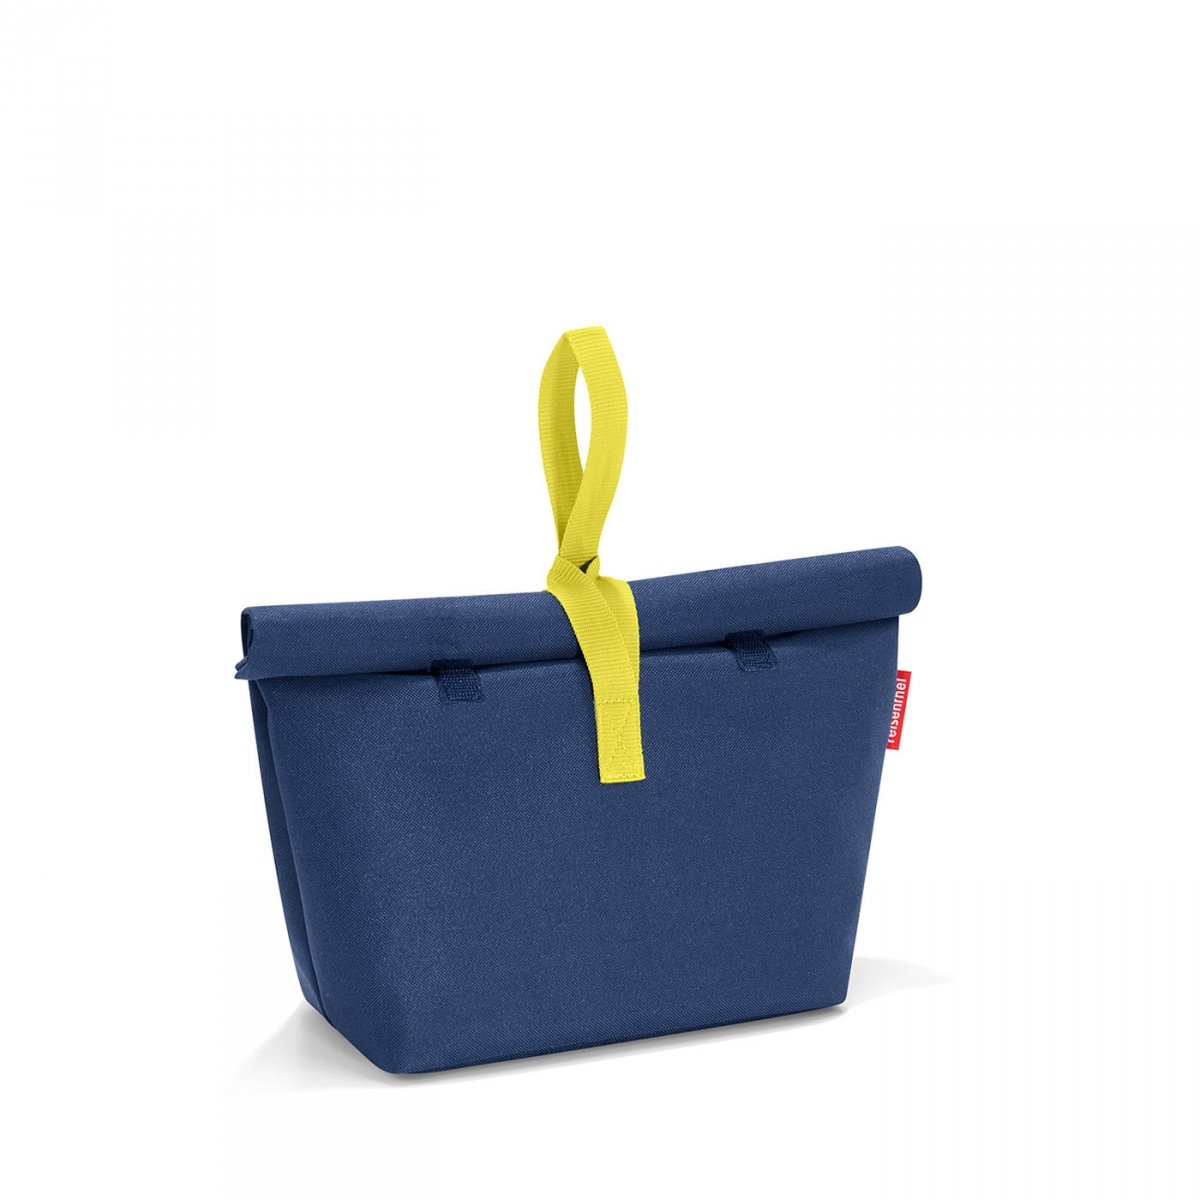 Torba na lunch Foodbox Iso M kolor Navy, firmy Reisenthel